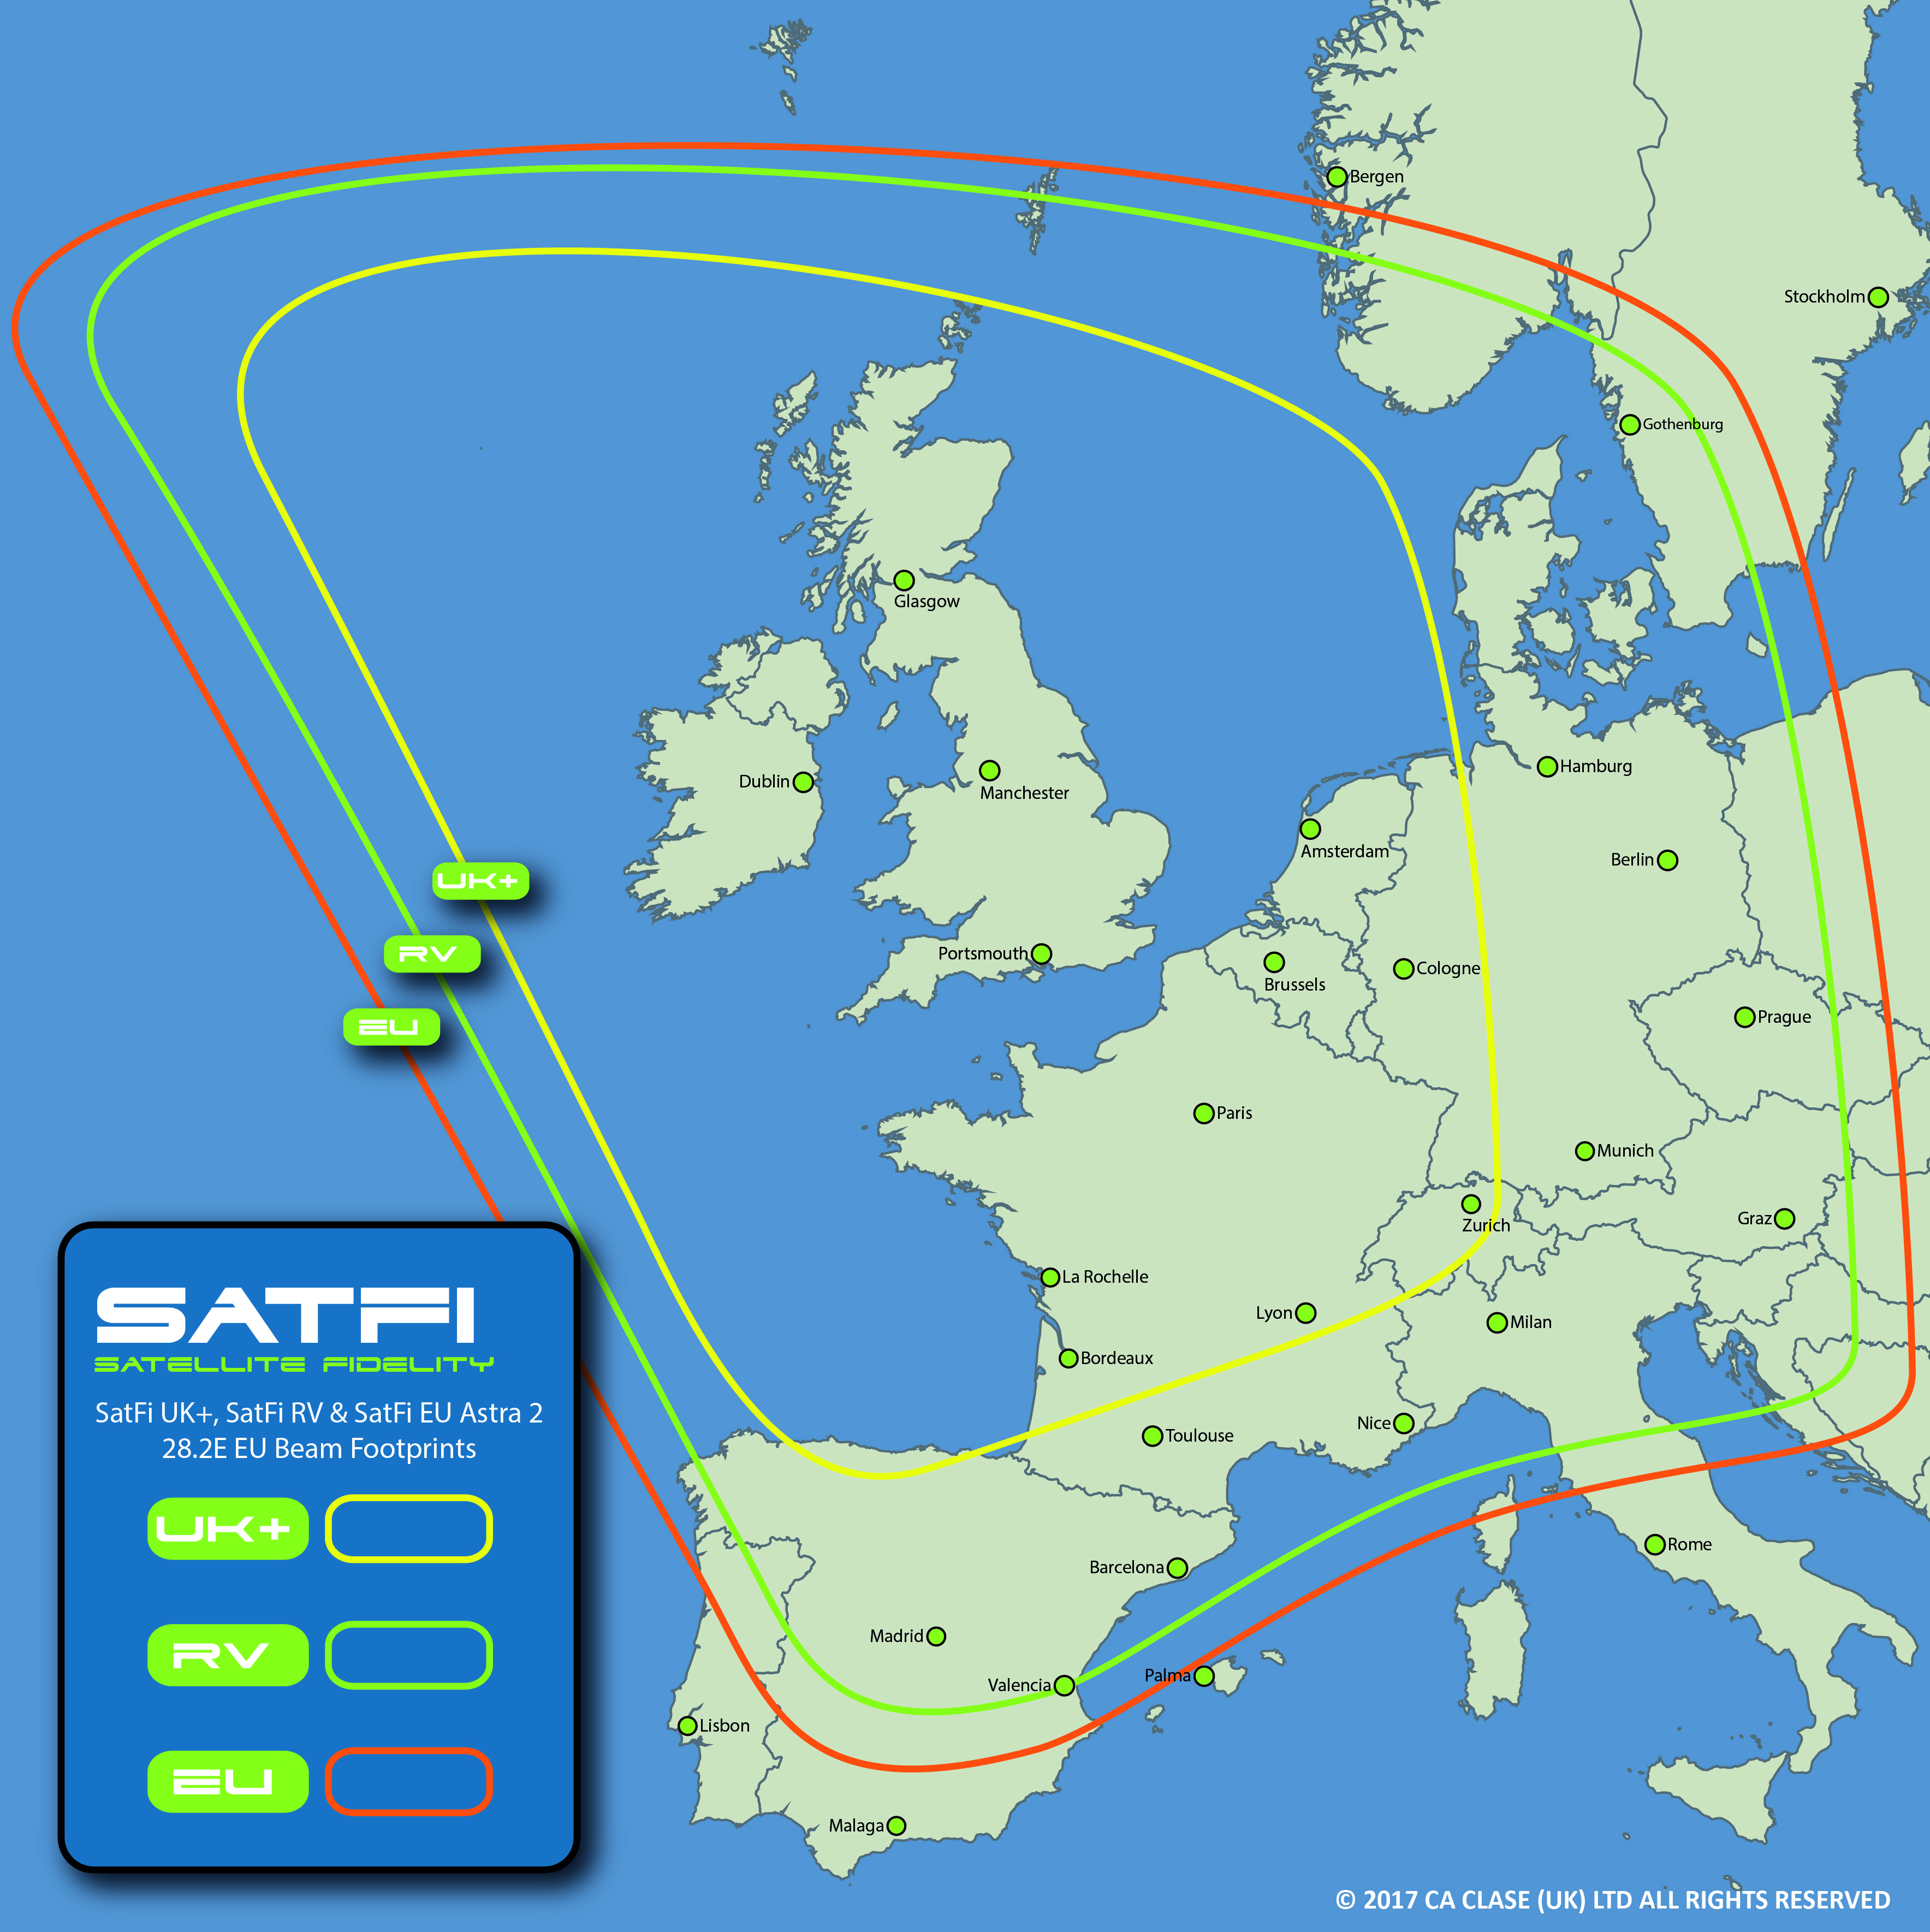 SatFi UK+ Satellite Dome